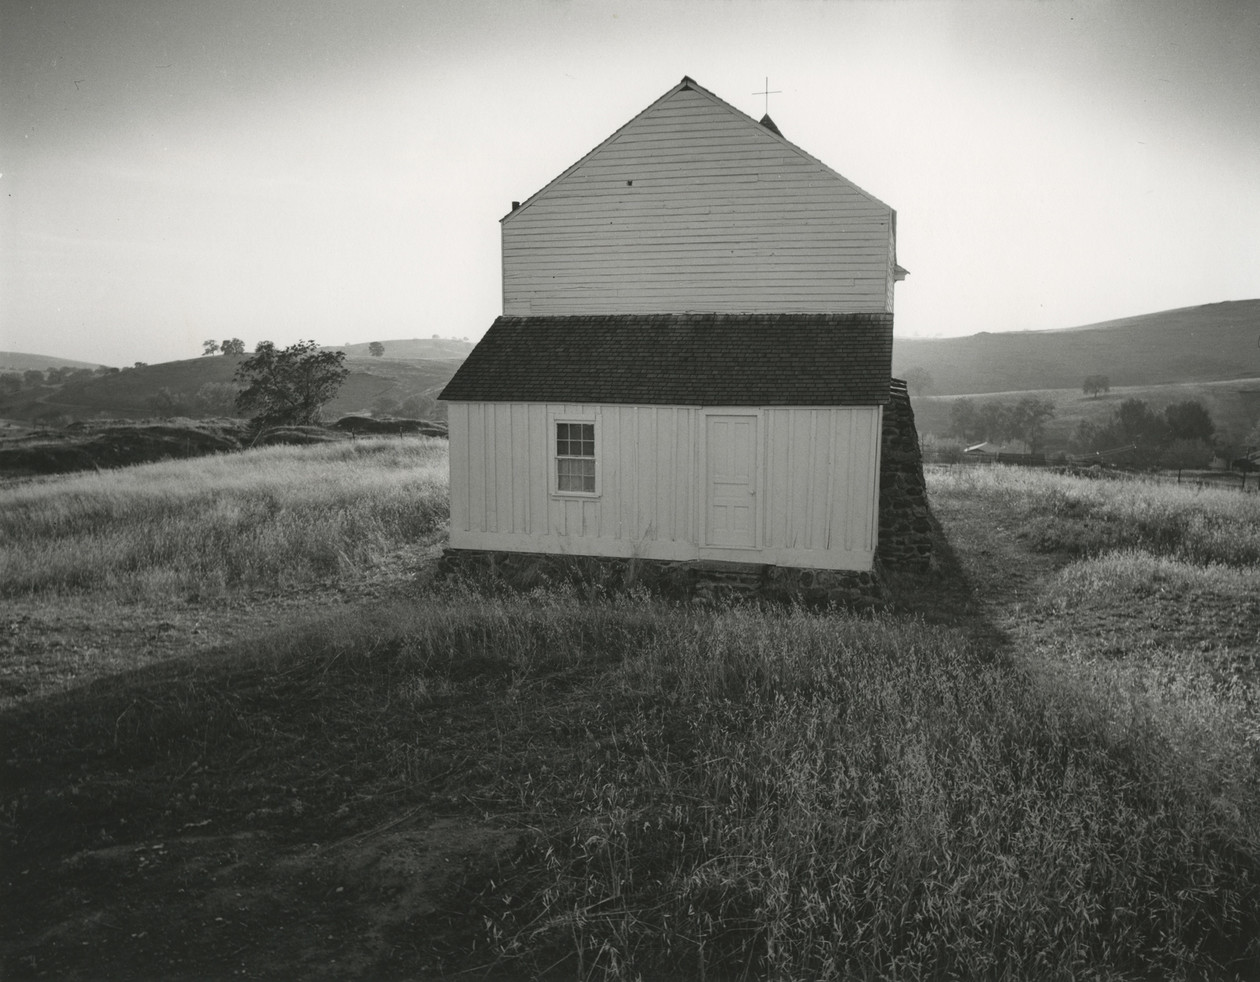 Church, Hornitos, California (1948) by Minor White